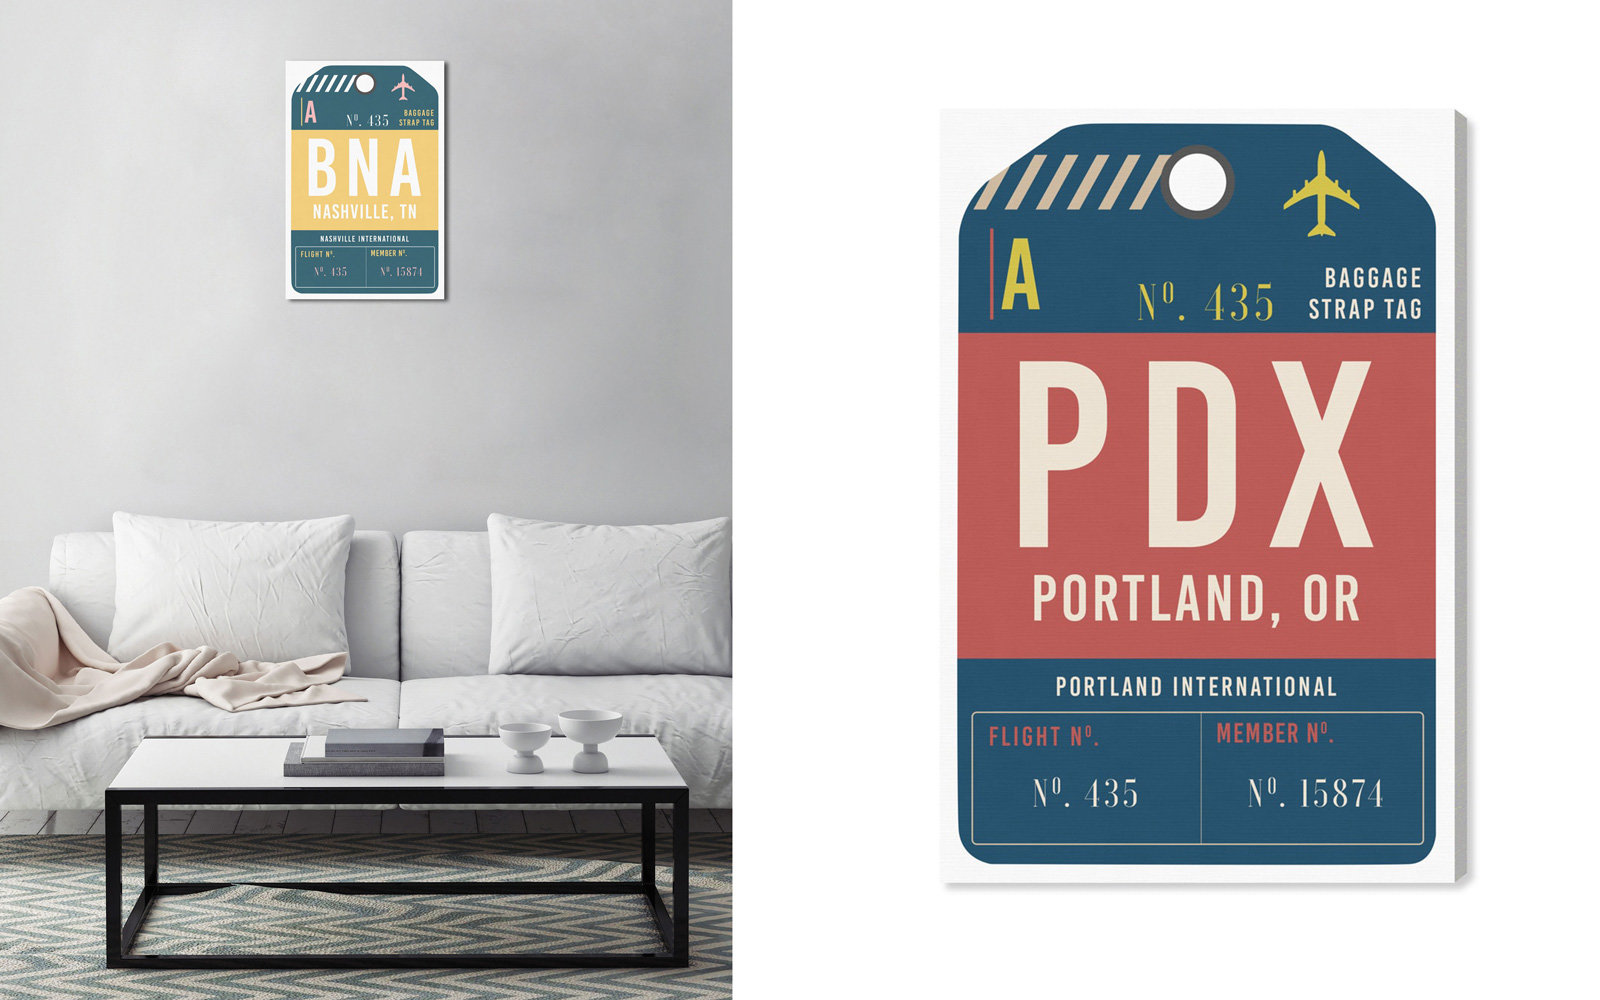 luggage tag poster